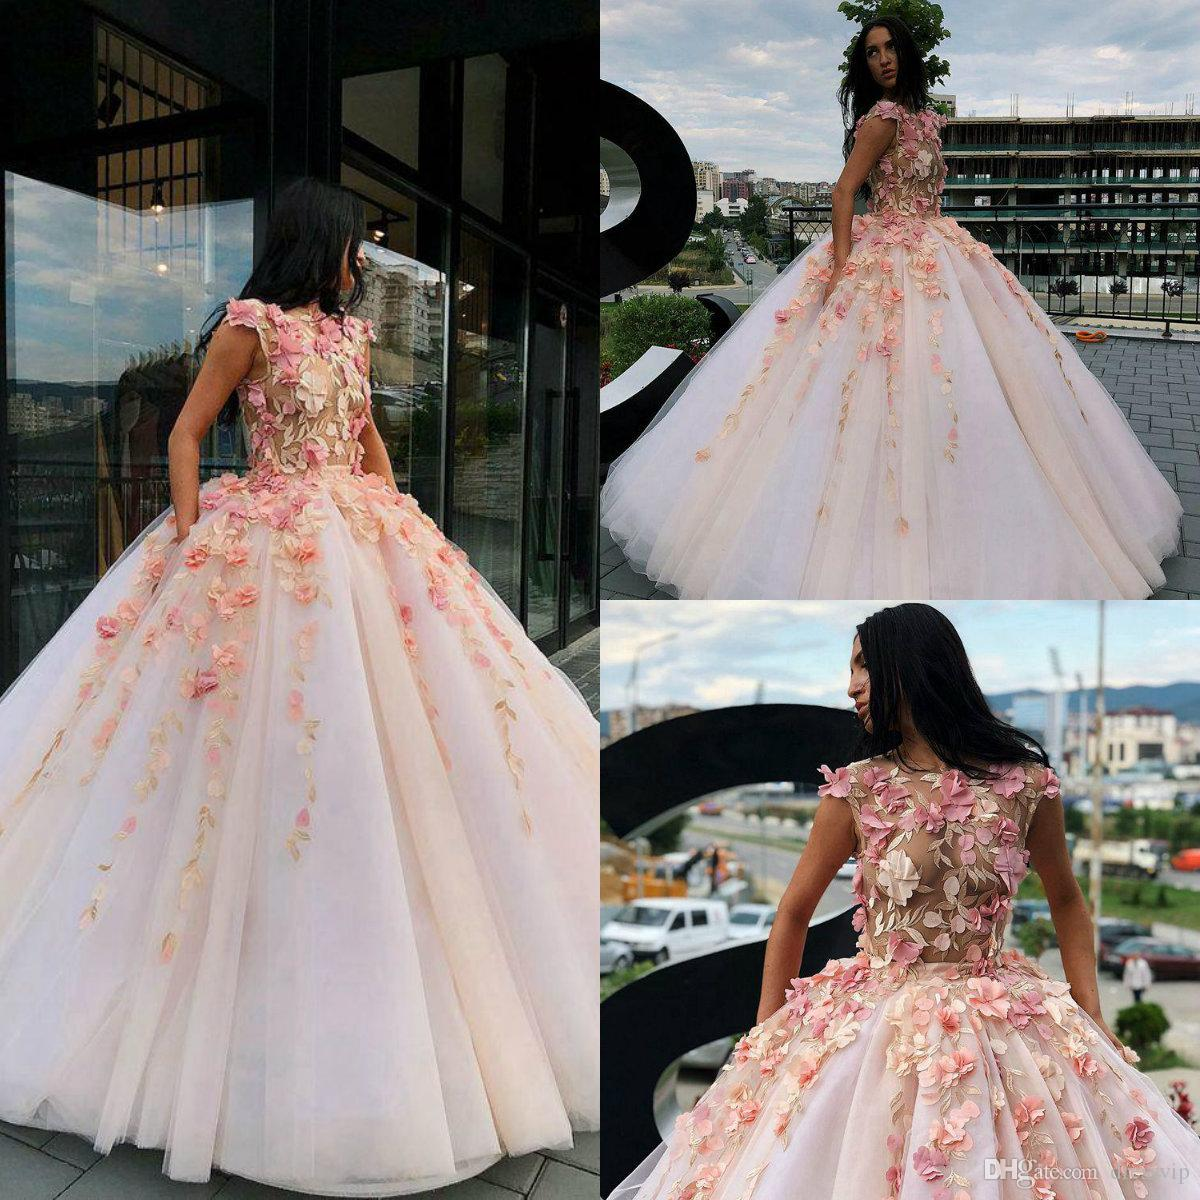 Charming Prom Dresses With 3D Floral Appliques Jewel Neck Ball Gown Quinceanera Qresses With Free Petticoat Floor Length Evening Gowns